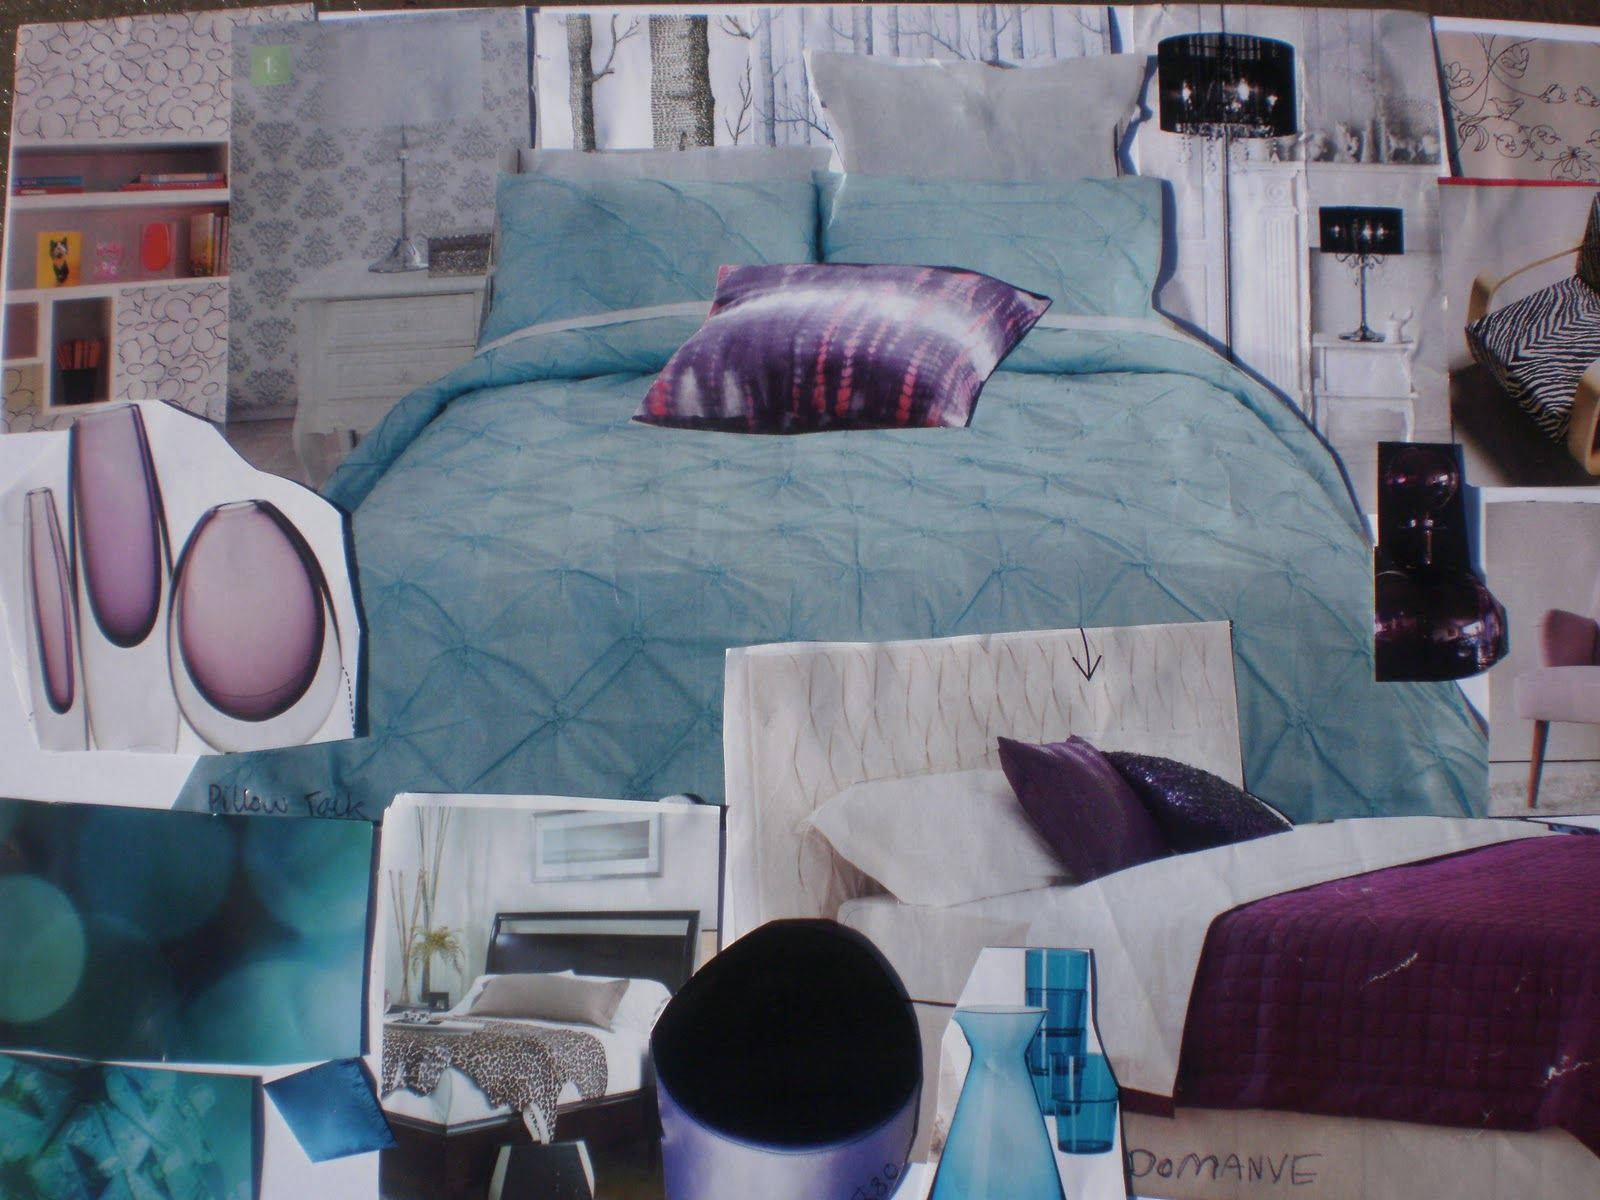 1000 images about My room ideas on Pinterest. Purple And Turquoise Bedroom